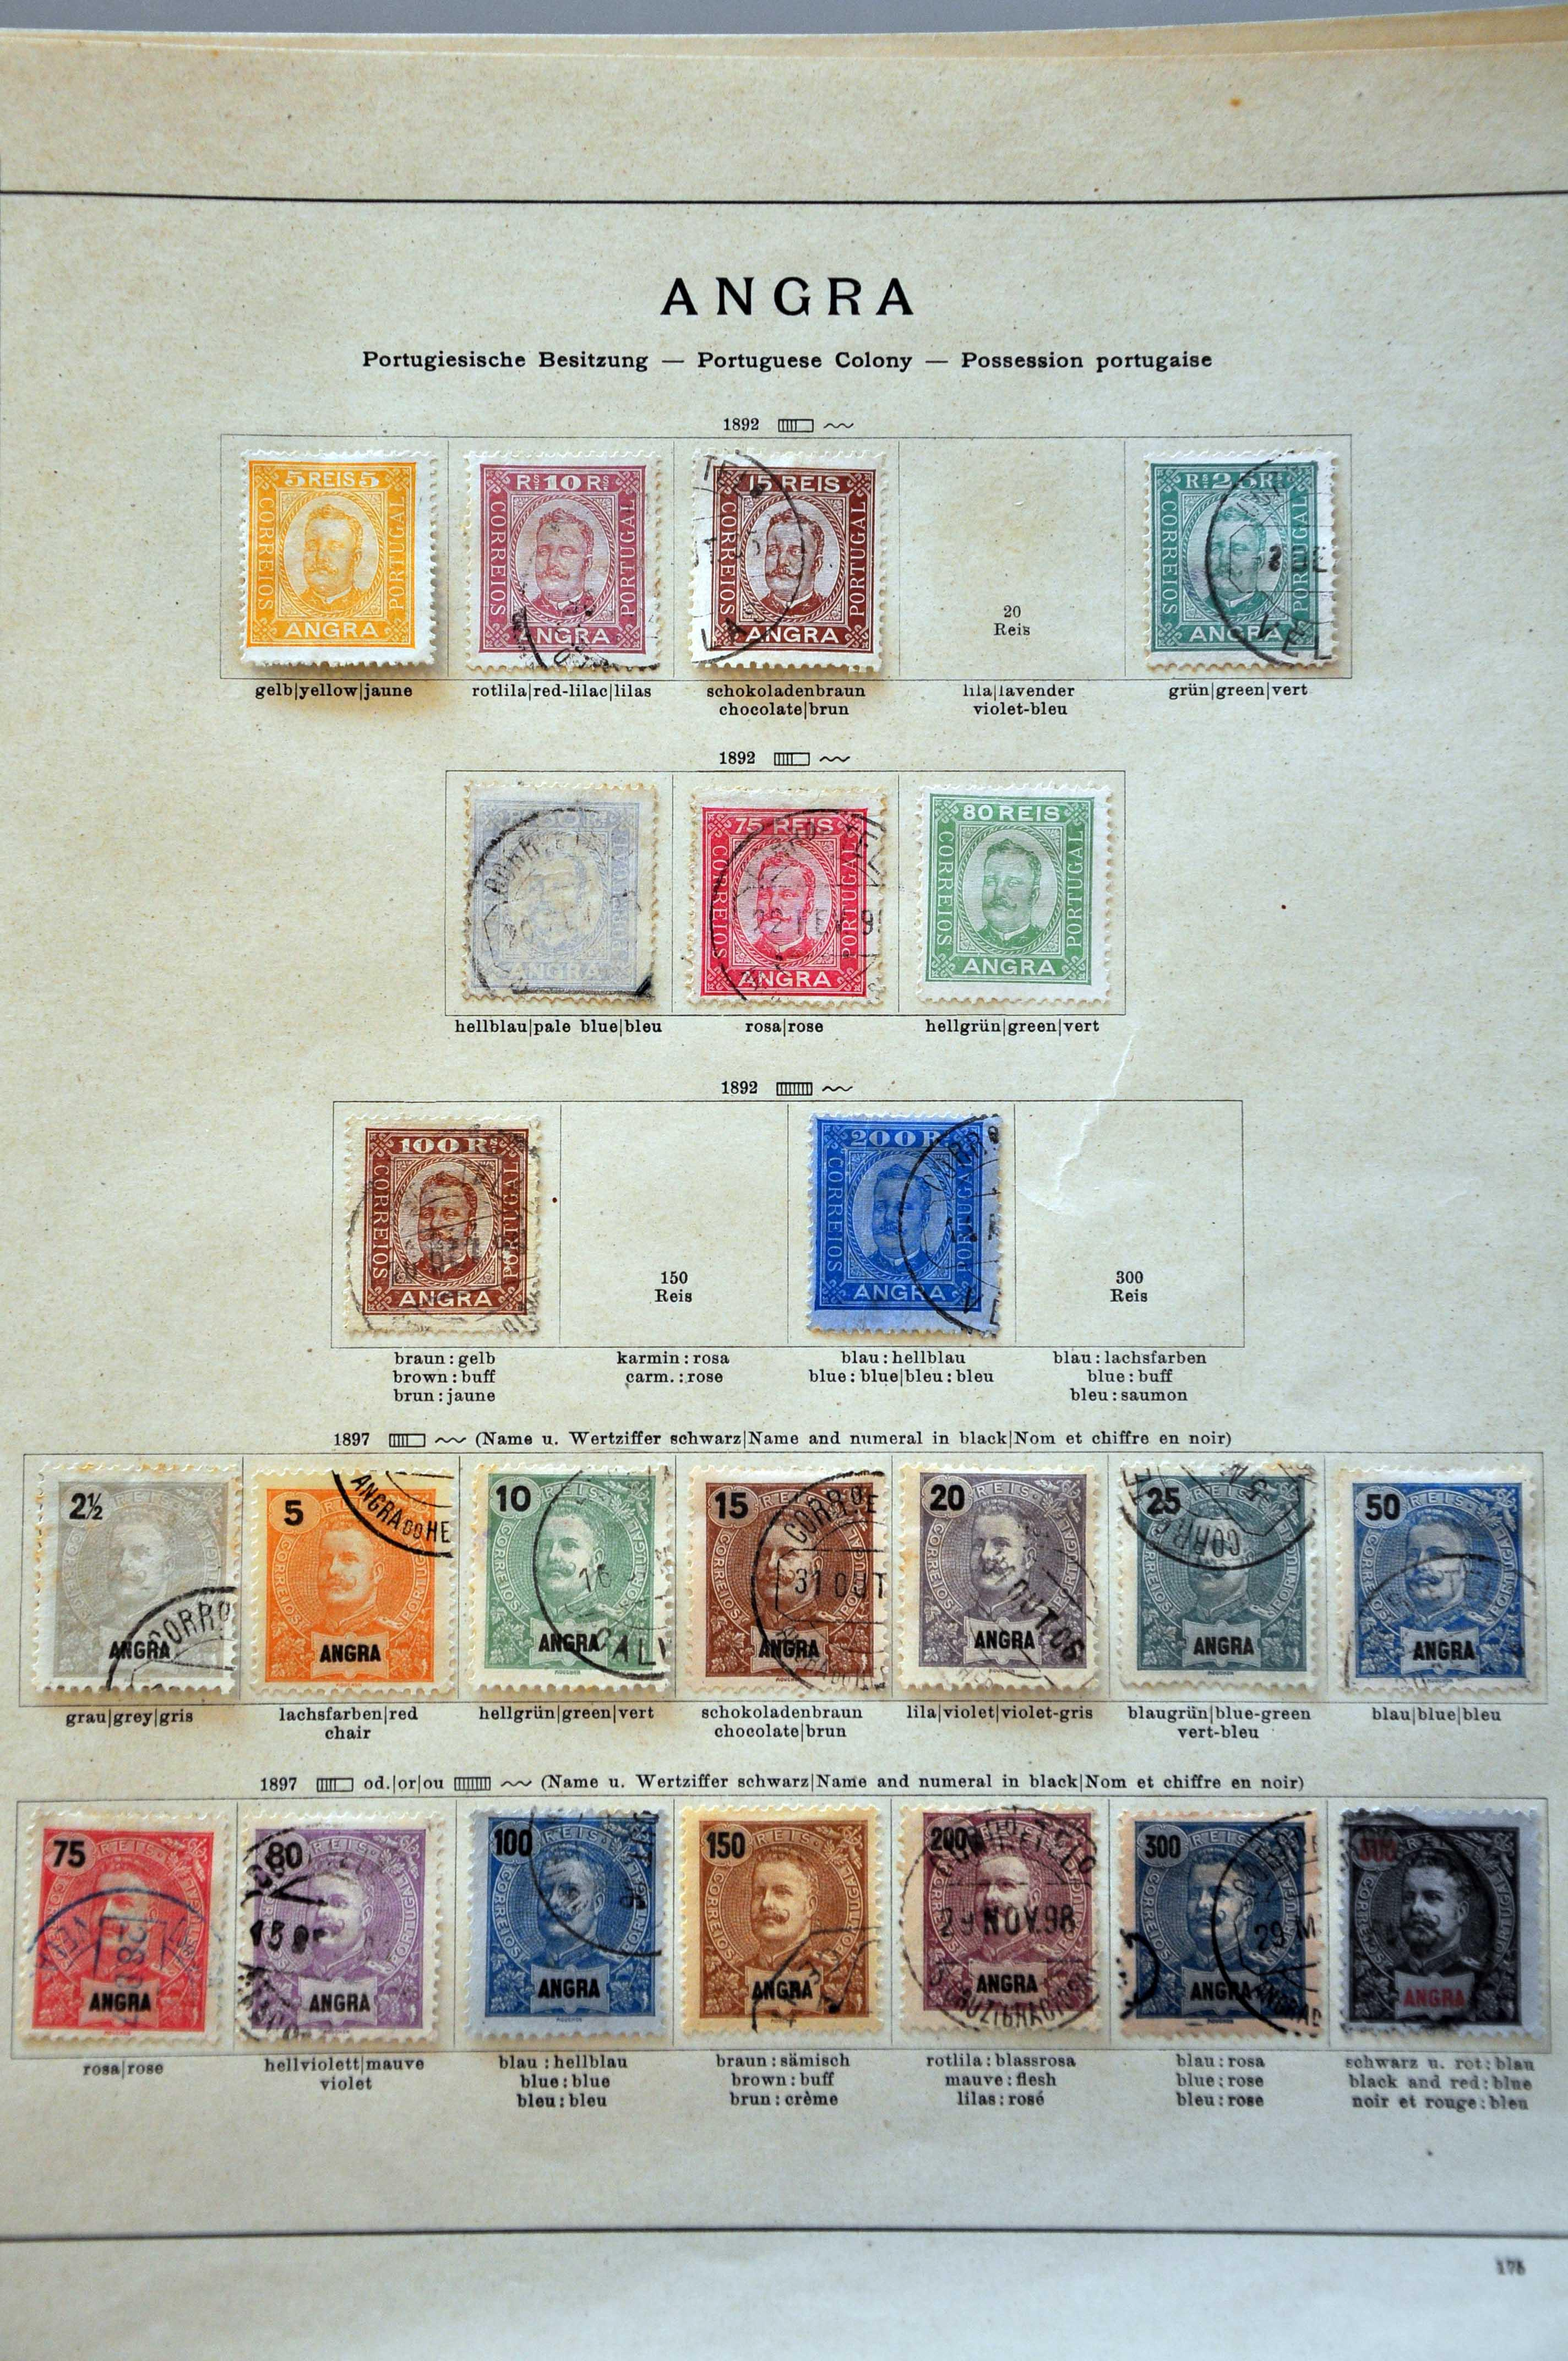 Stamp Auction - Portugal and former territories portuguese